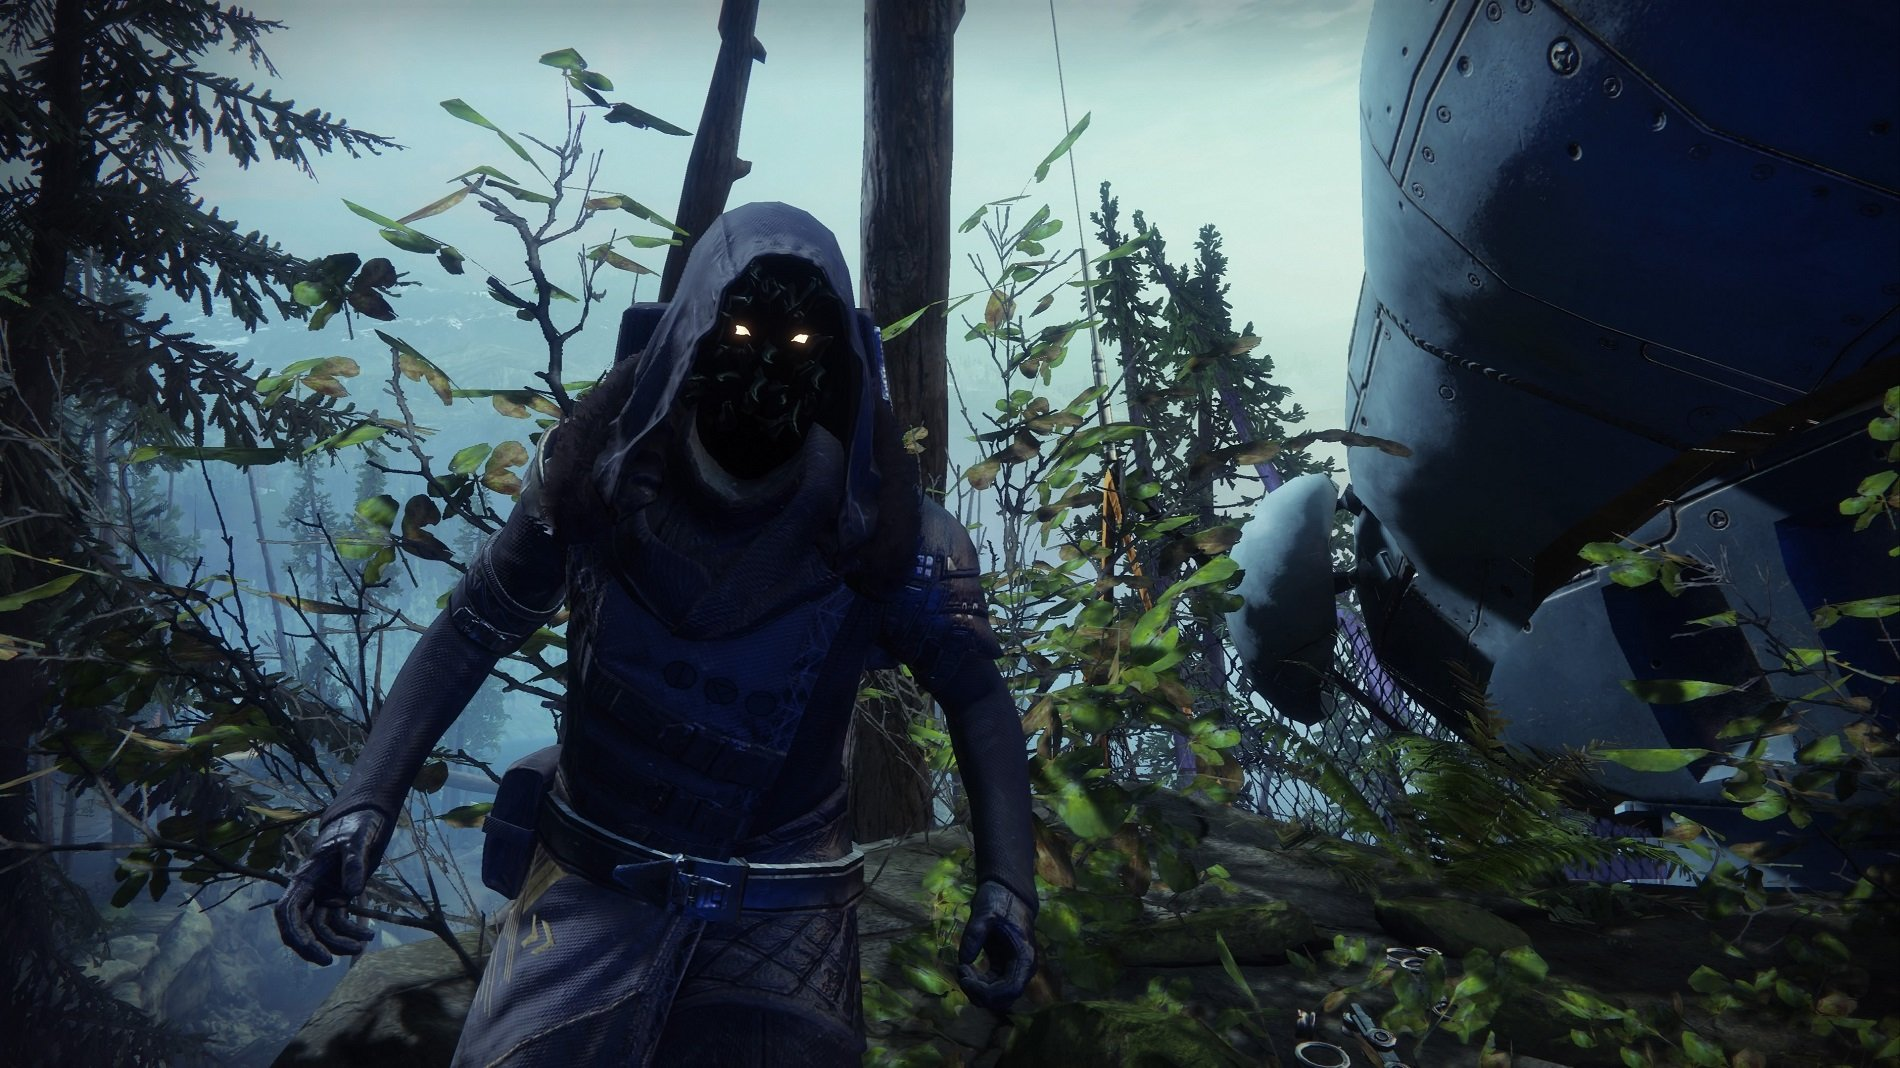 Where to find Xur in Destiny 2 - July 3, 2020